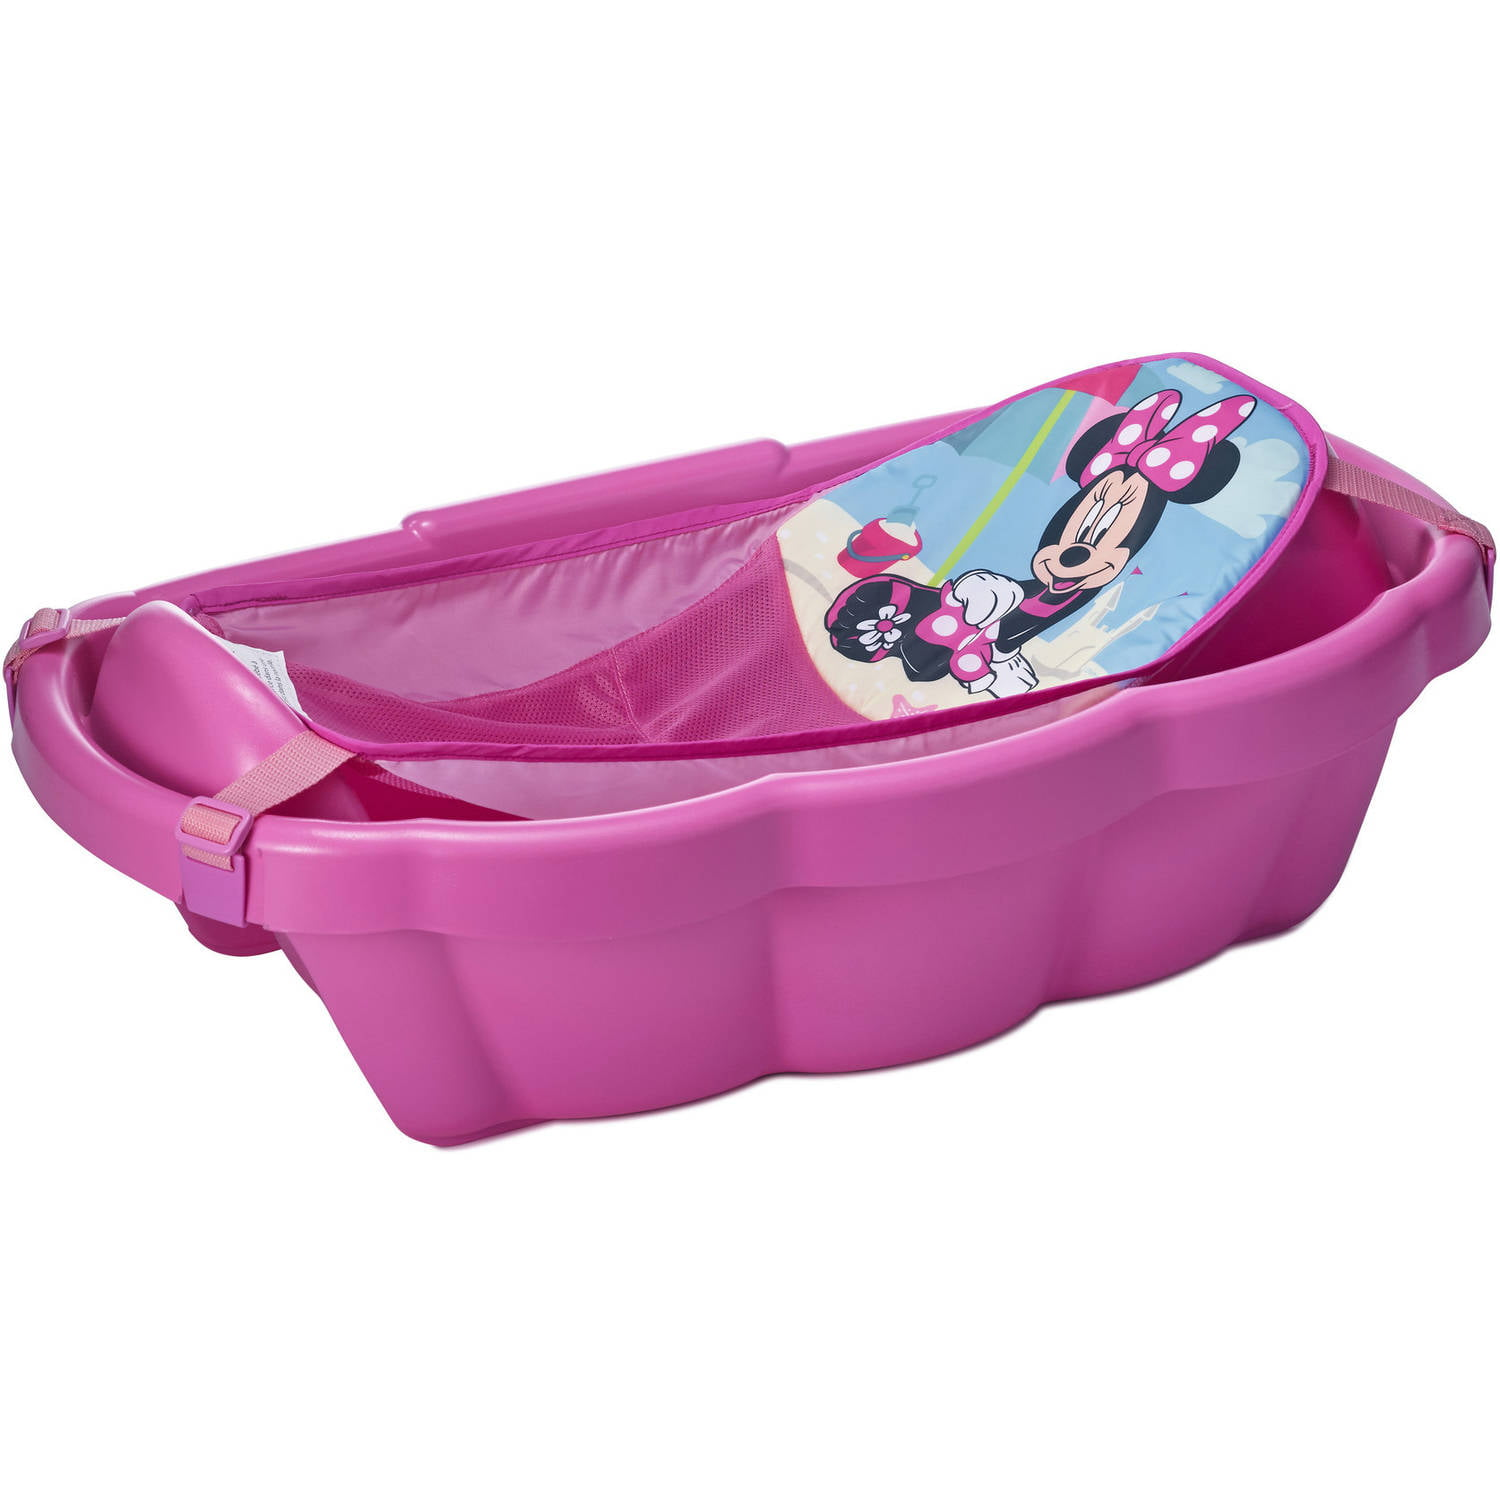 Disney Minnie Mouse 2-in-1 Bathtub - Walmart.com